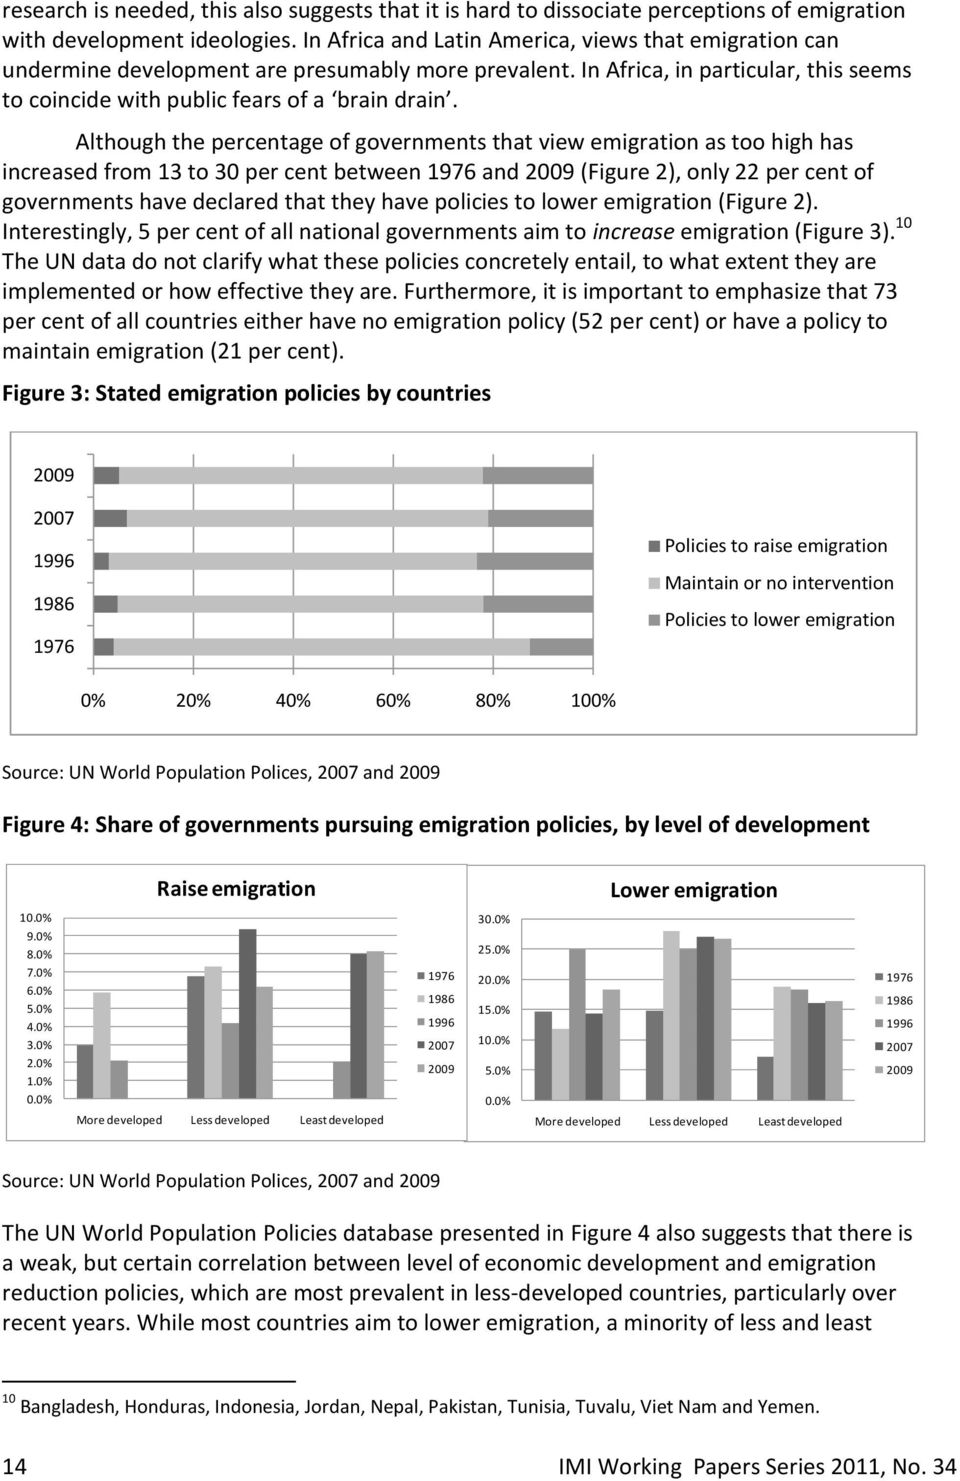 Although the percentage of governments that view emigration as too high has increased from 13 to 30 per cent between 1976 and 2009 (Figure 2), only 22 per cent of governments have declared that they